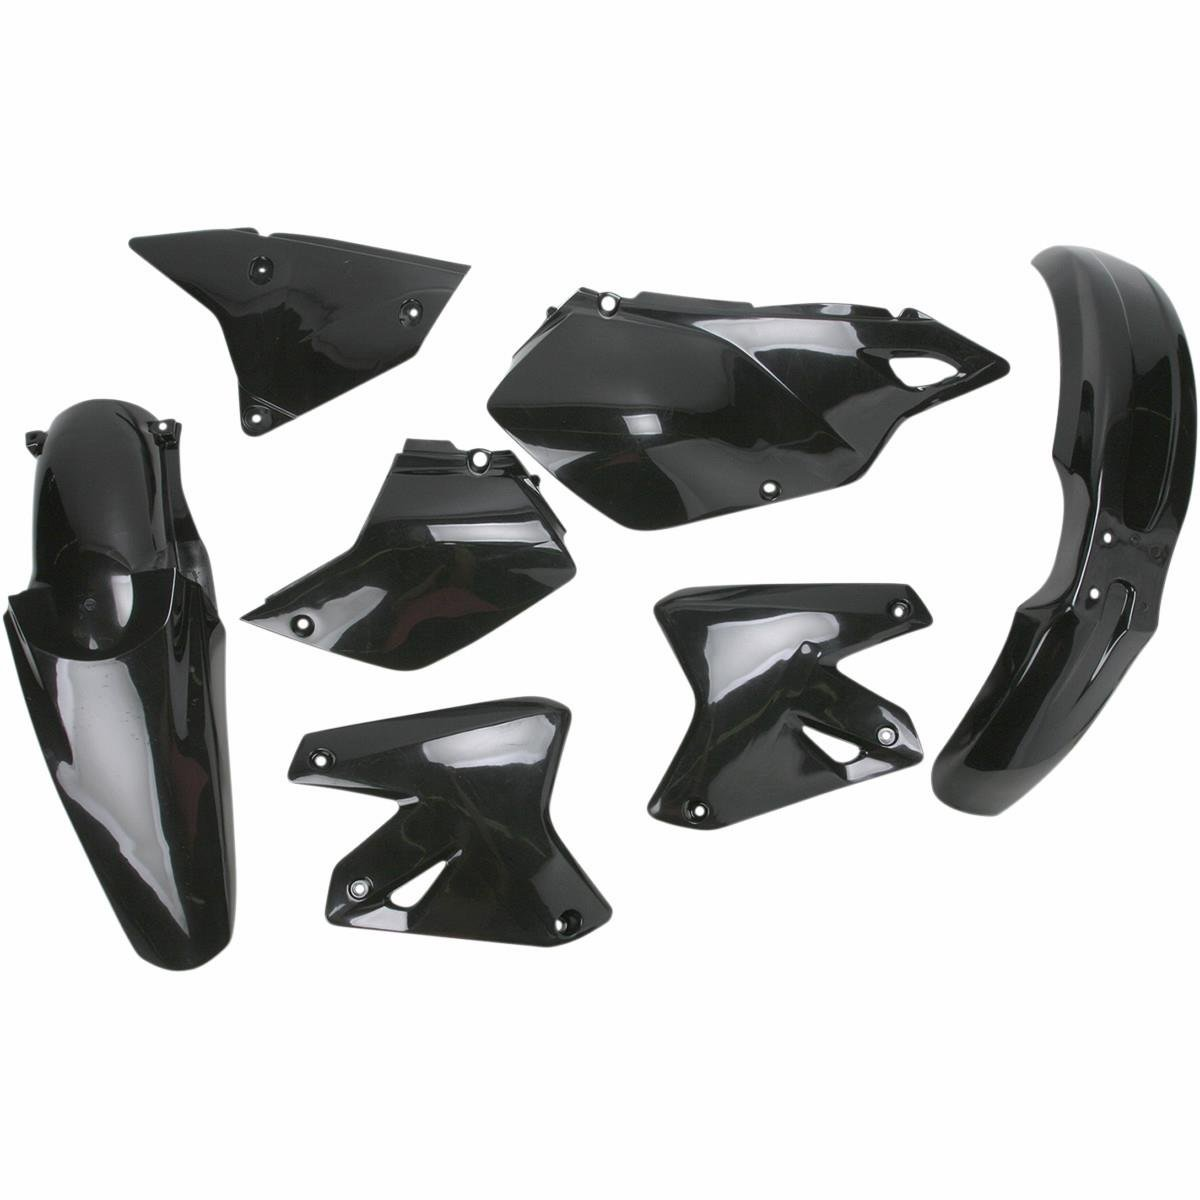 Acerbis Replacement Plastic Kit - Black , Material: Plastic 2041080001 0007586.090